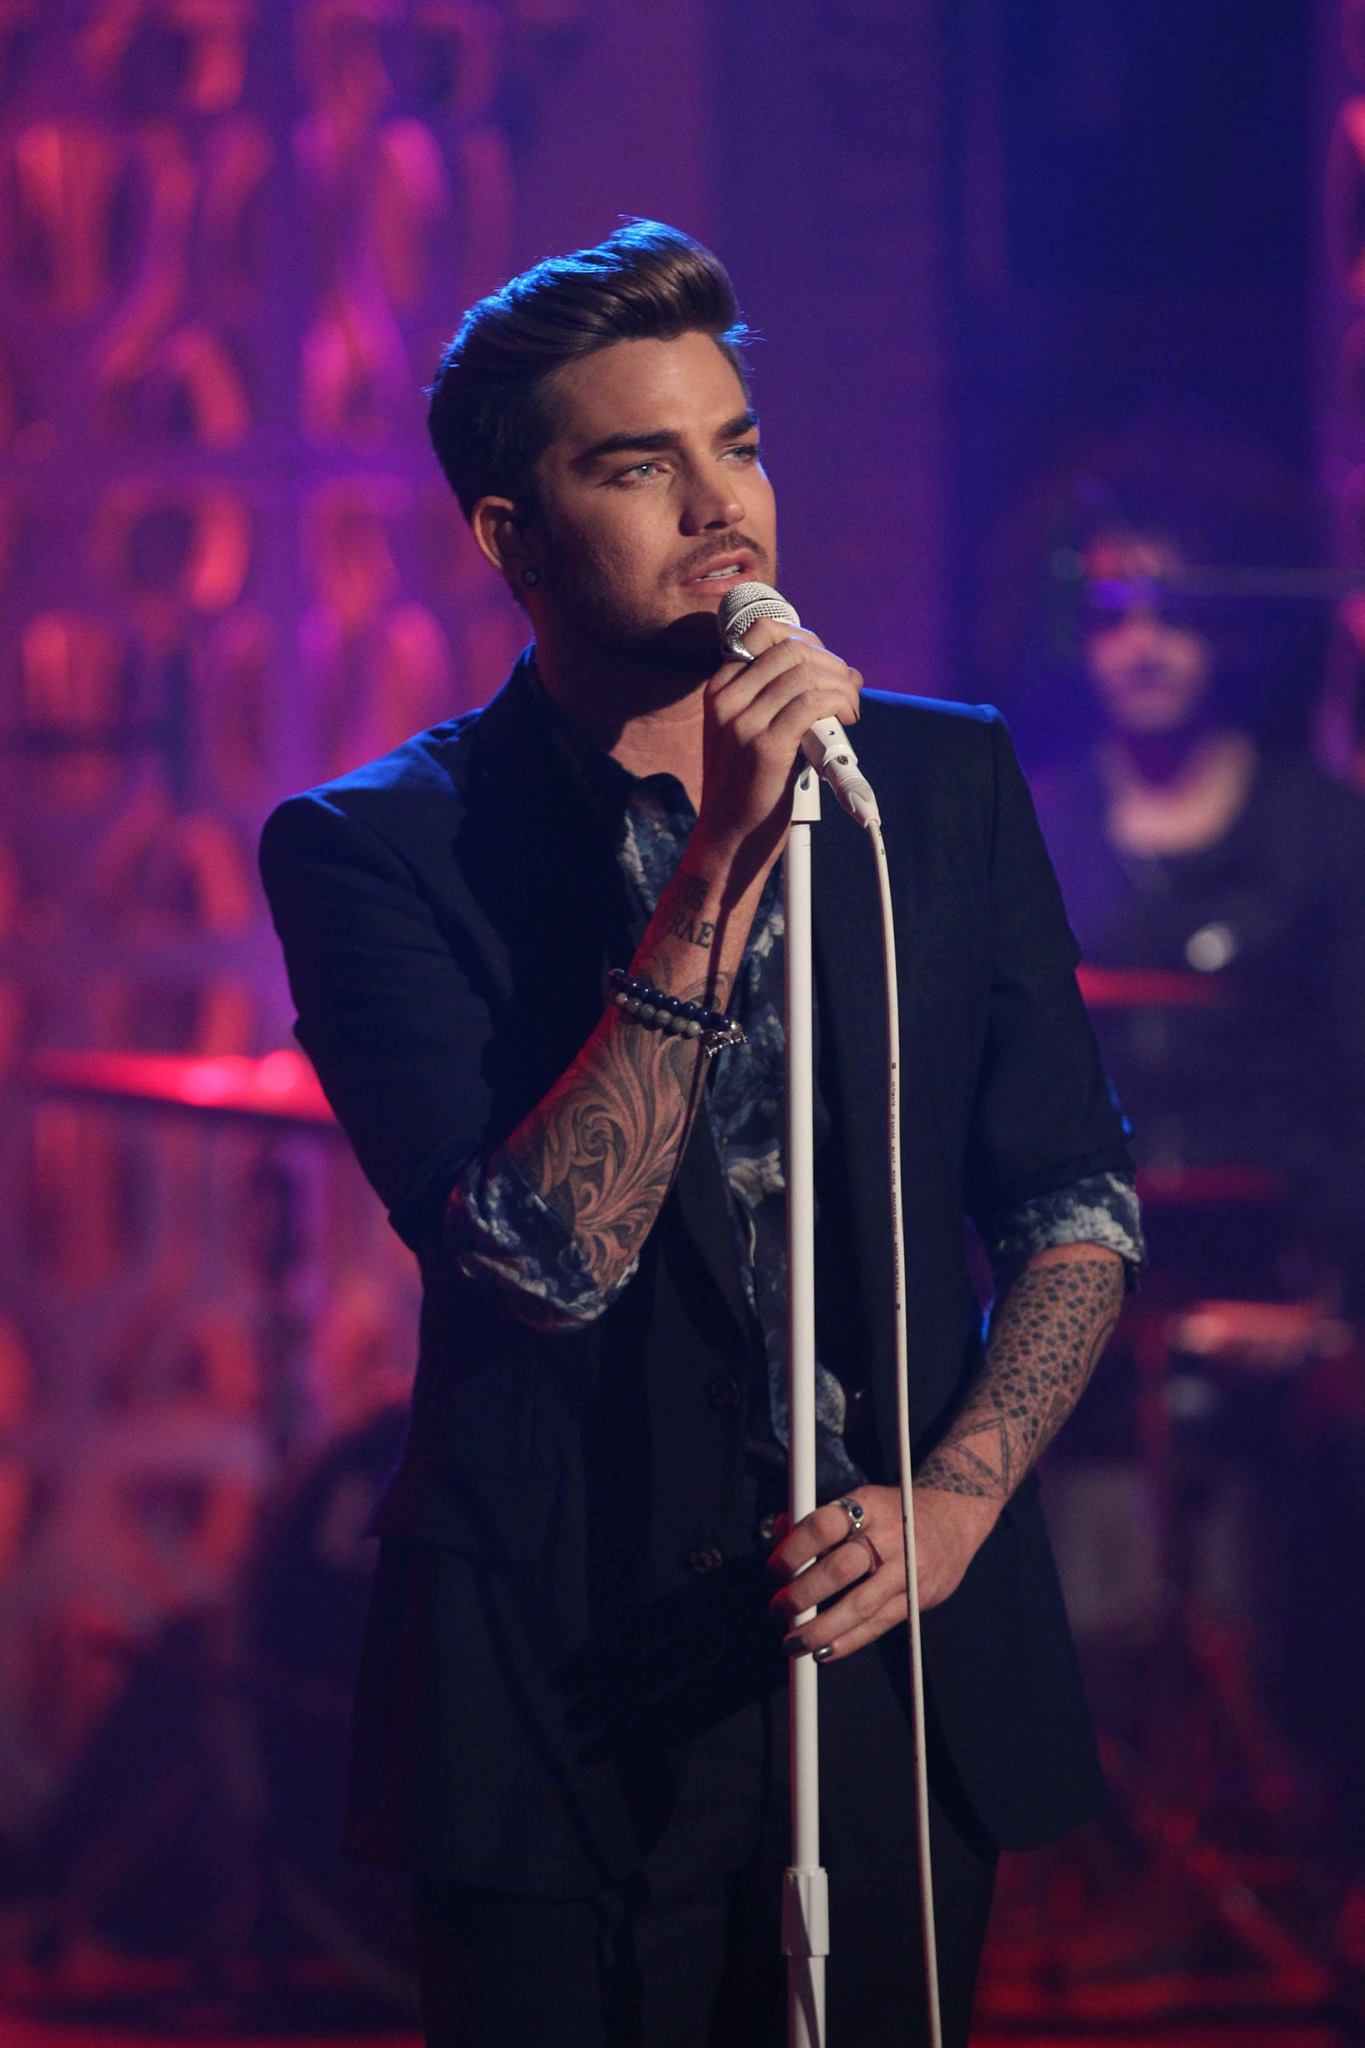 Adam Lambert sings his heart out